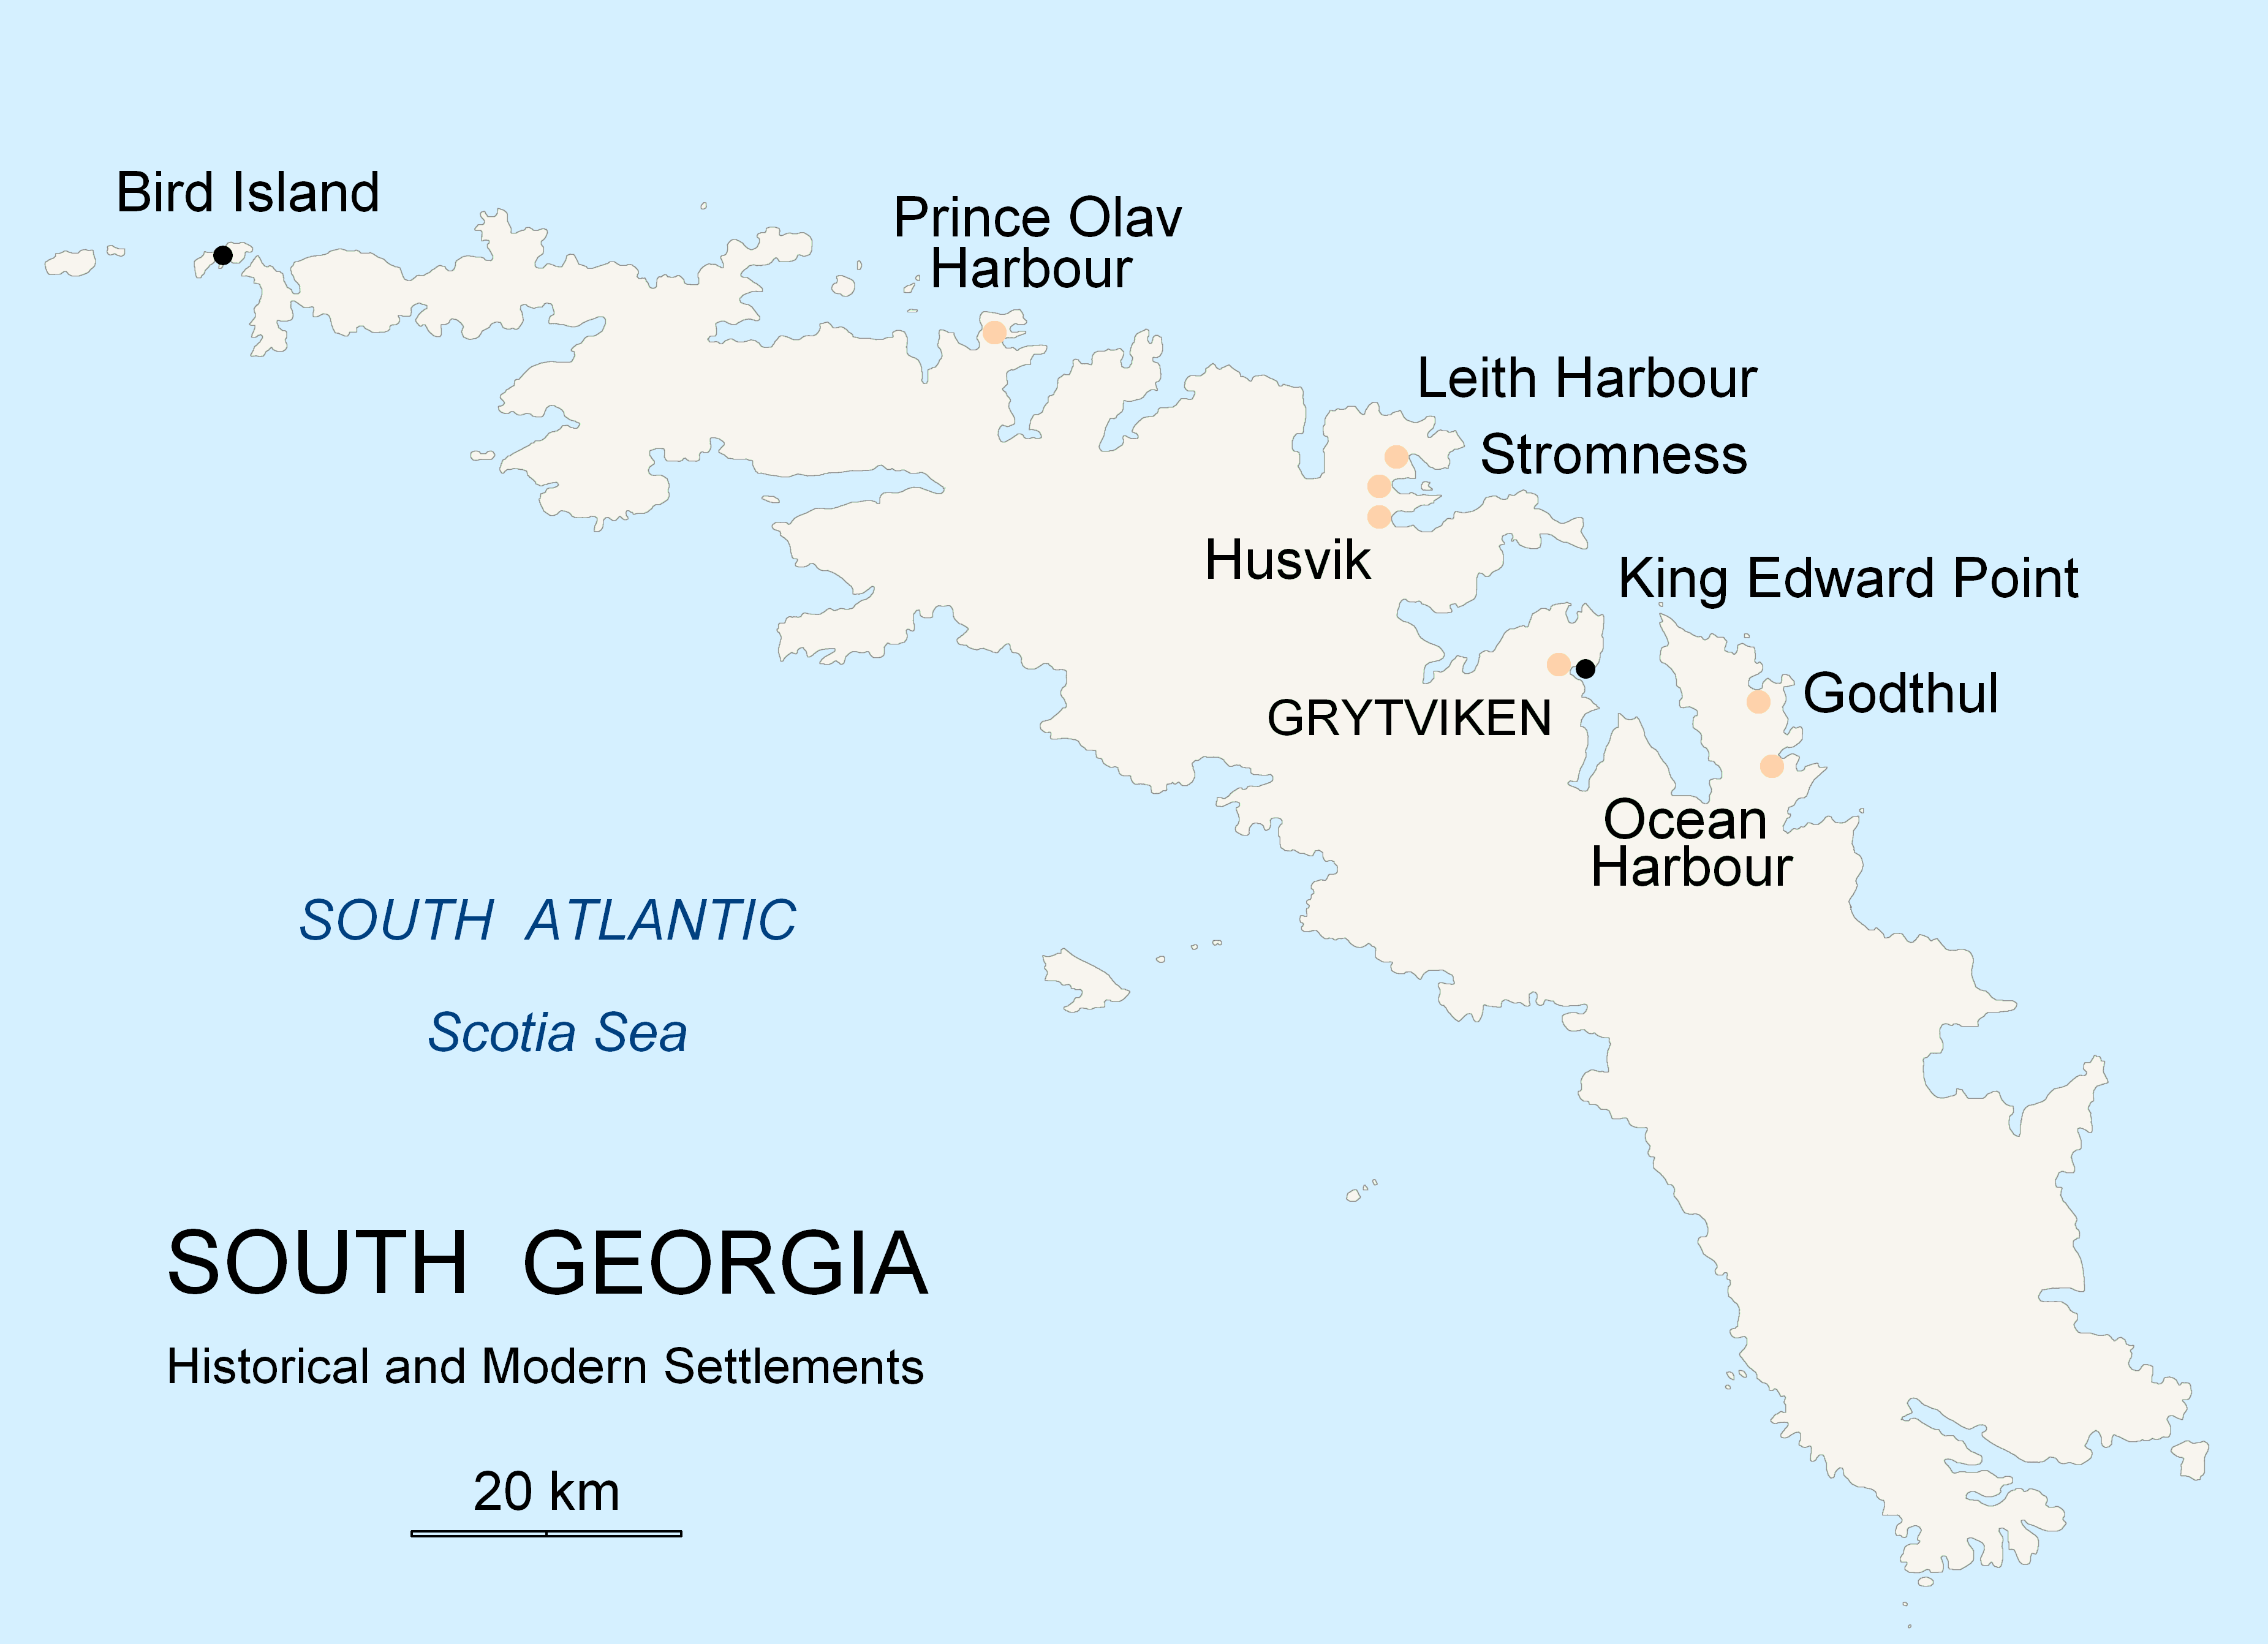 Map of settlements on South Georgia Island.